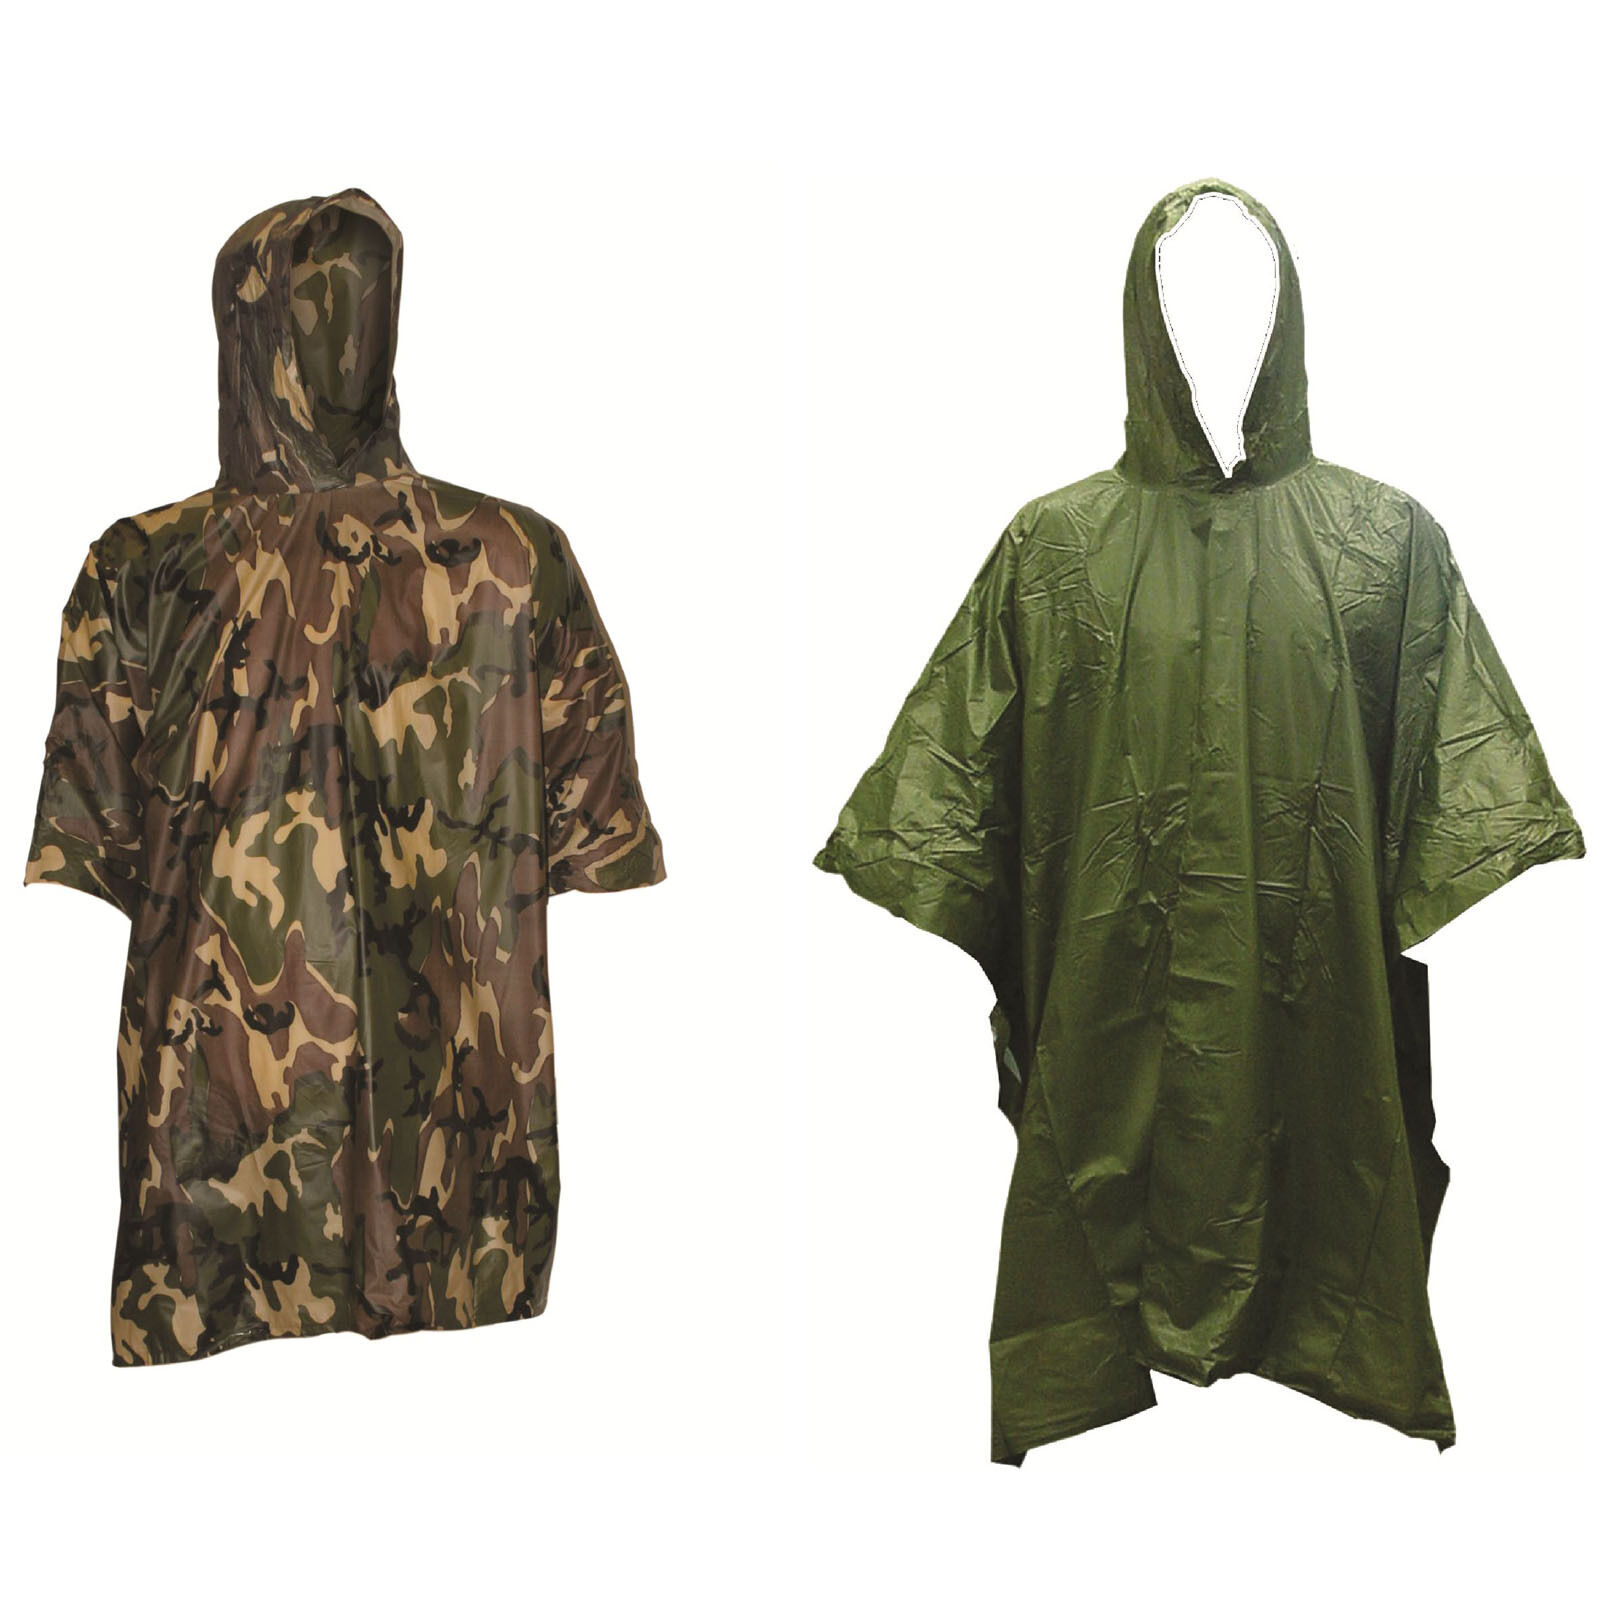 Lightweight Hooded Multi-Purpose Poncho Fishing DPM Camo & Olive Hunting Fishing Poncho Army 4725f7